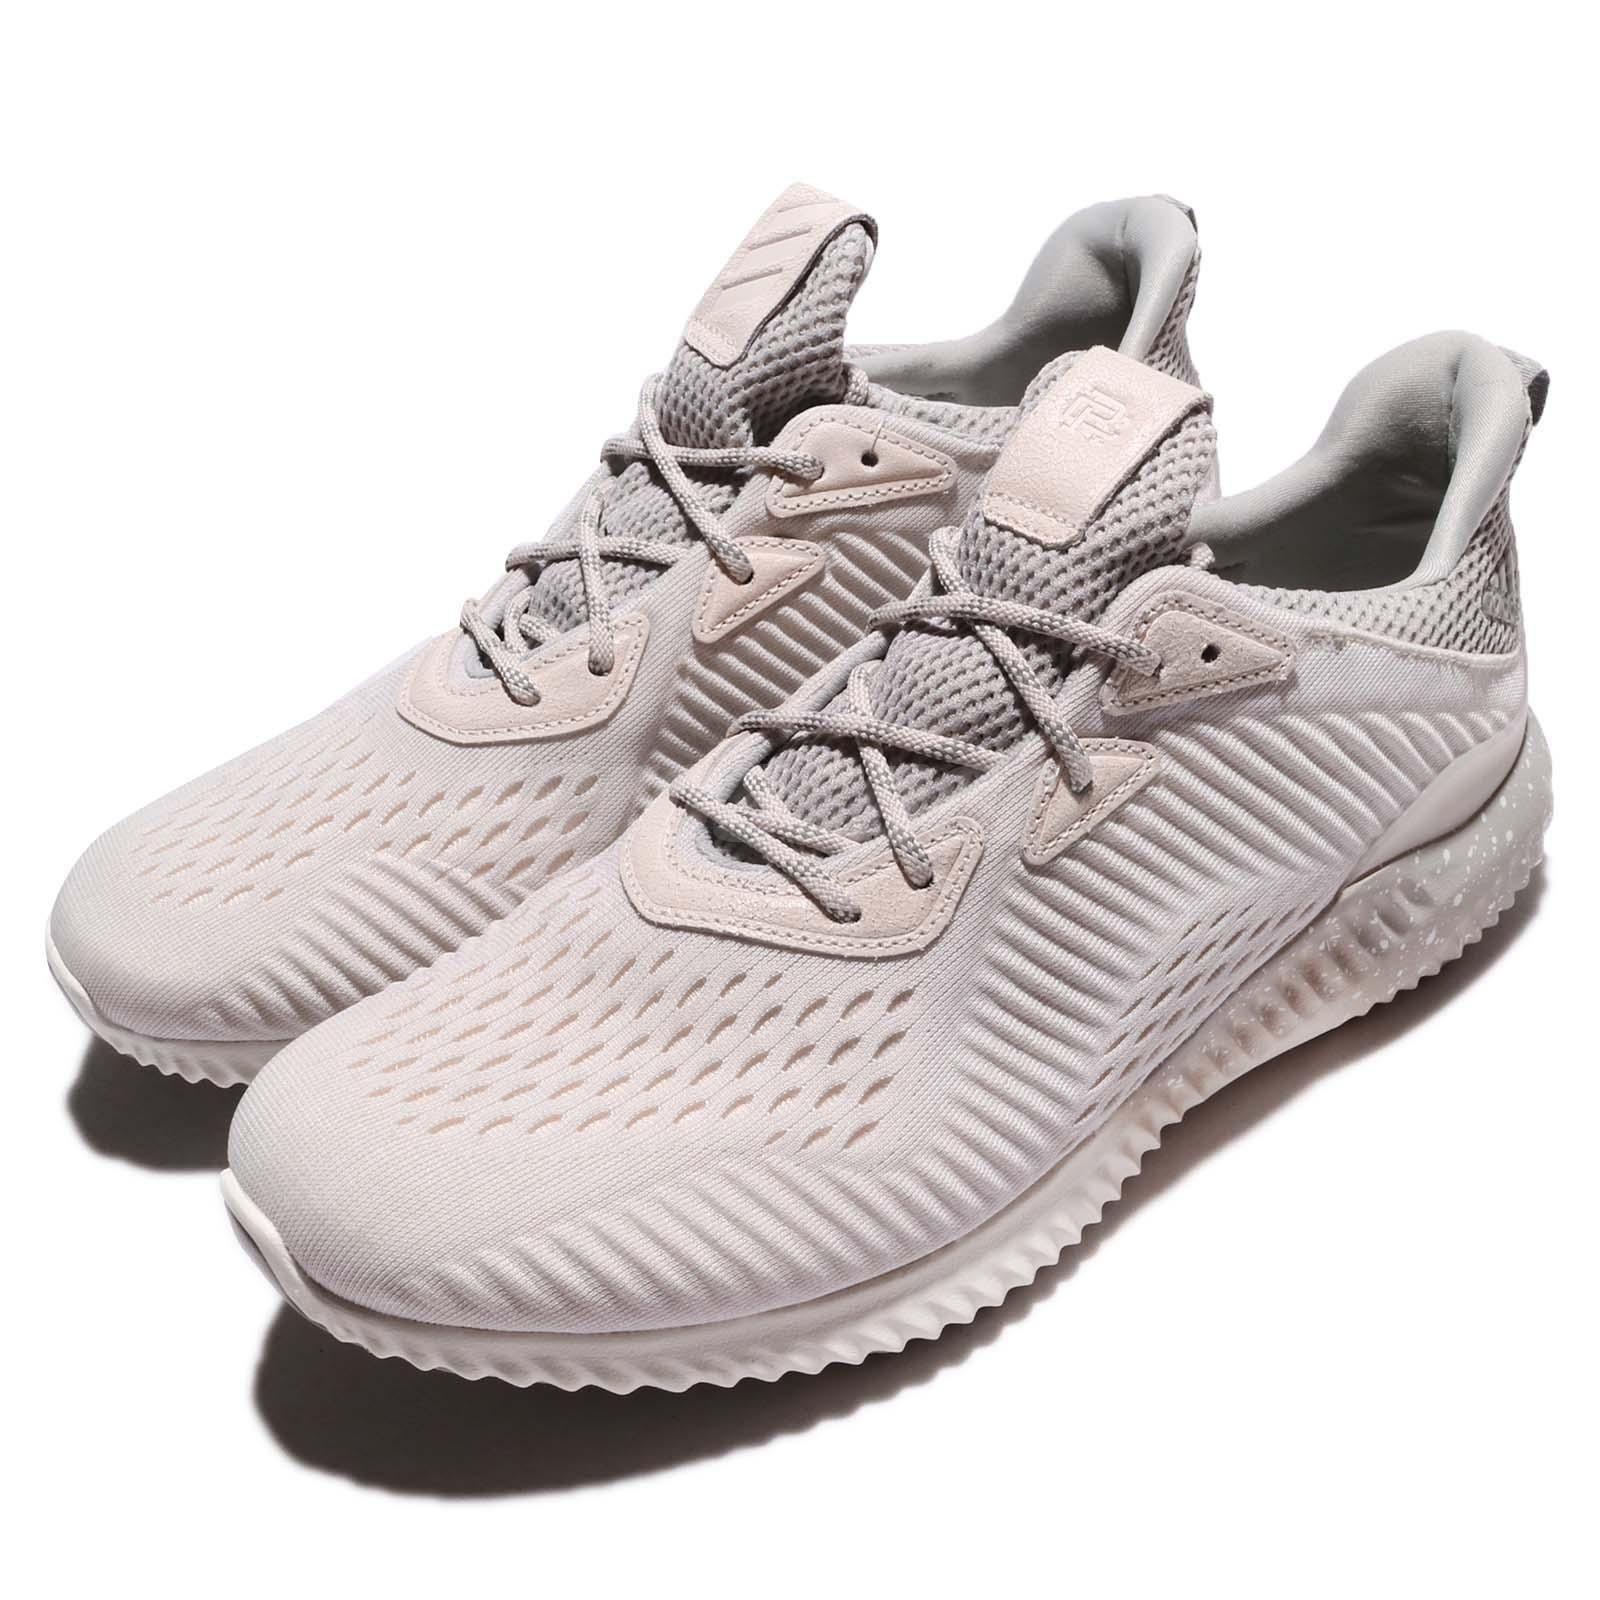 b90cfffe0 adidas x Reigning Champ Alphabounce 1 Reigning Cha Grey Men Running Shoes  CG5328